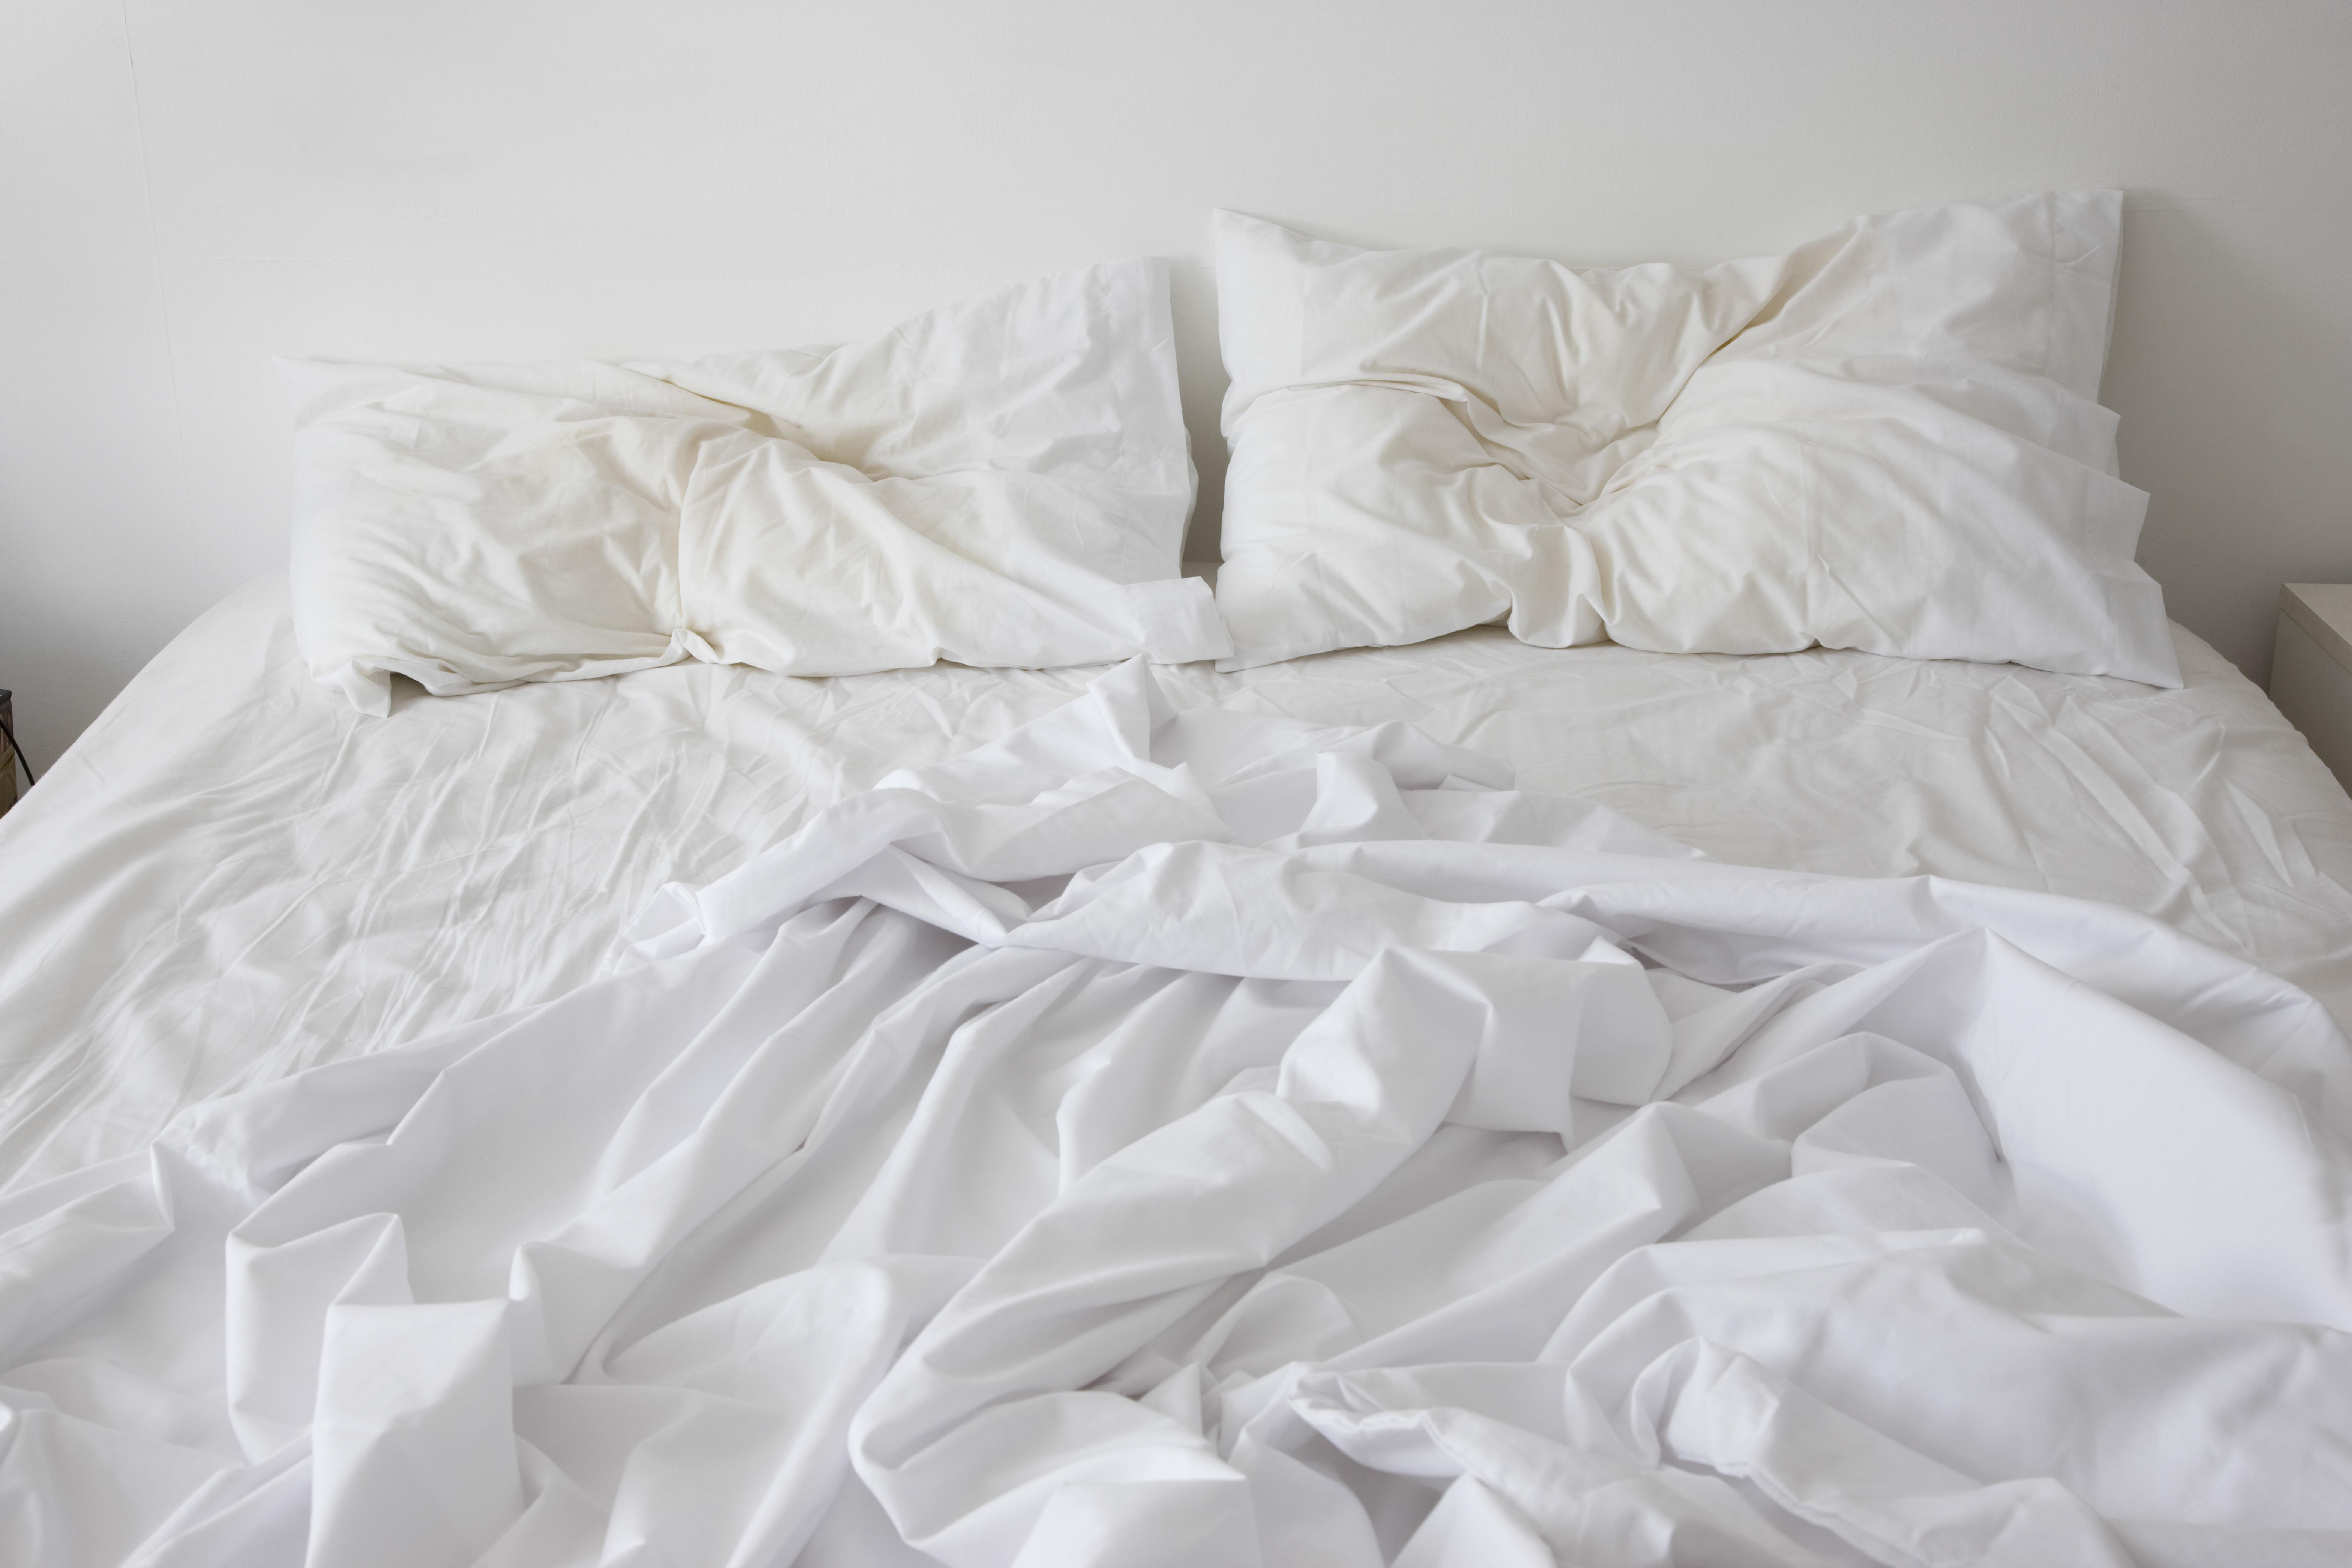 White bed sheets tumblr - Messy Bed Tumblr Bed Sheets Stock Photo And Royaltyfree Images Decorating Messy Bed Tumblr